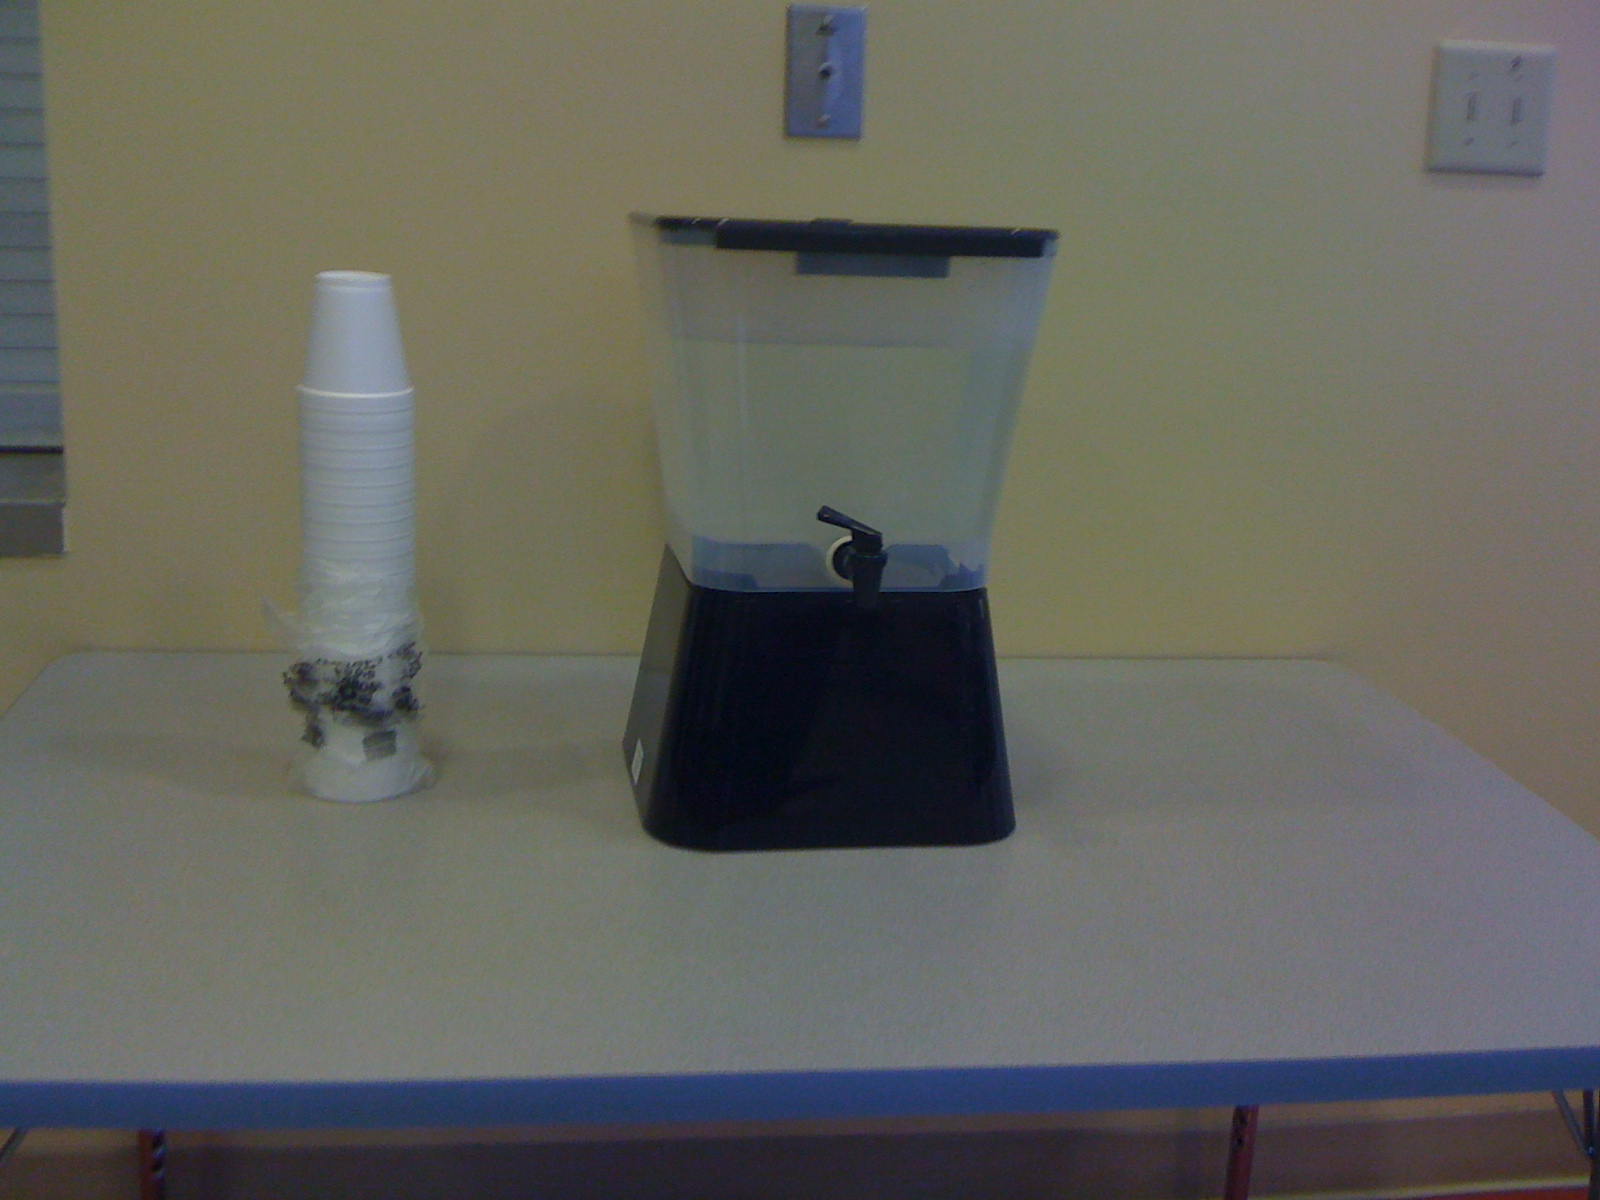 Water fountains schools - School Water Fountain School Water Fountains